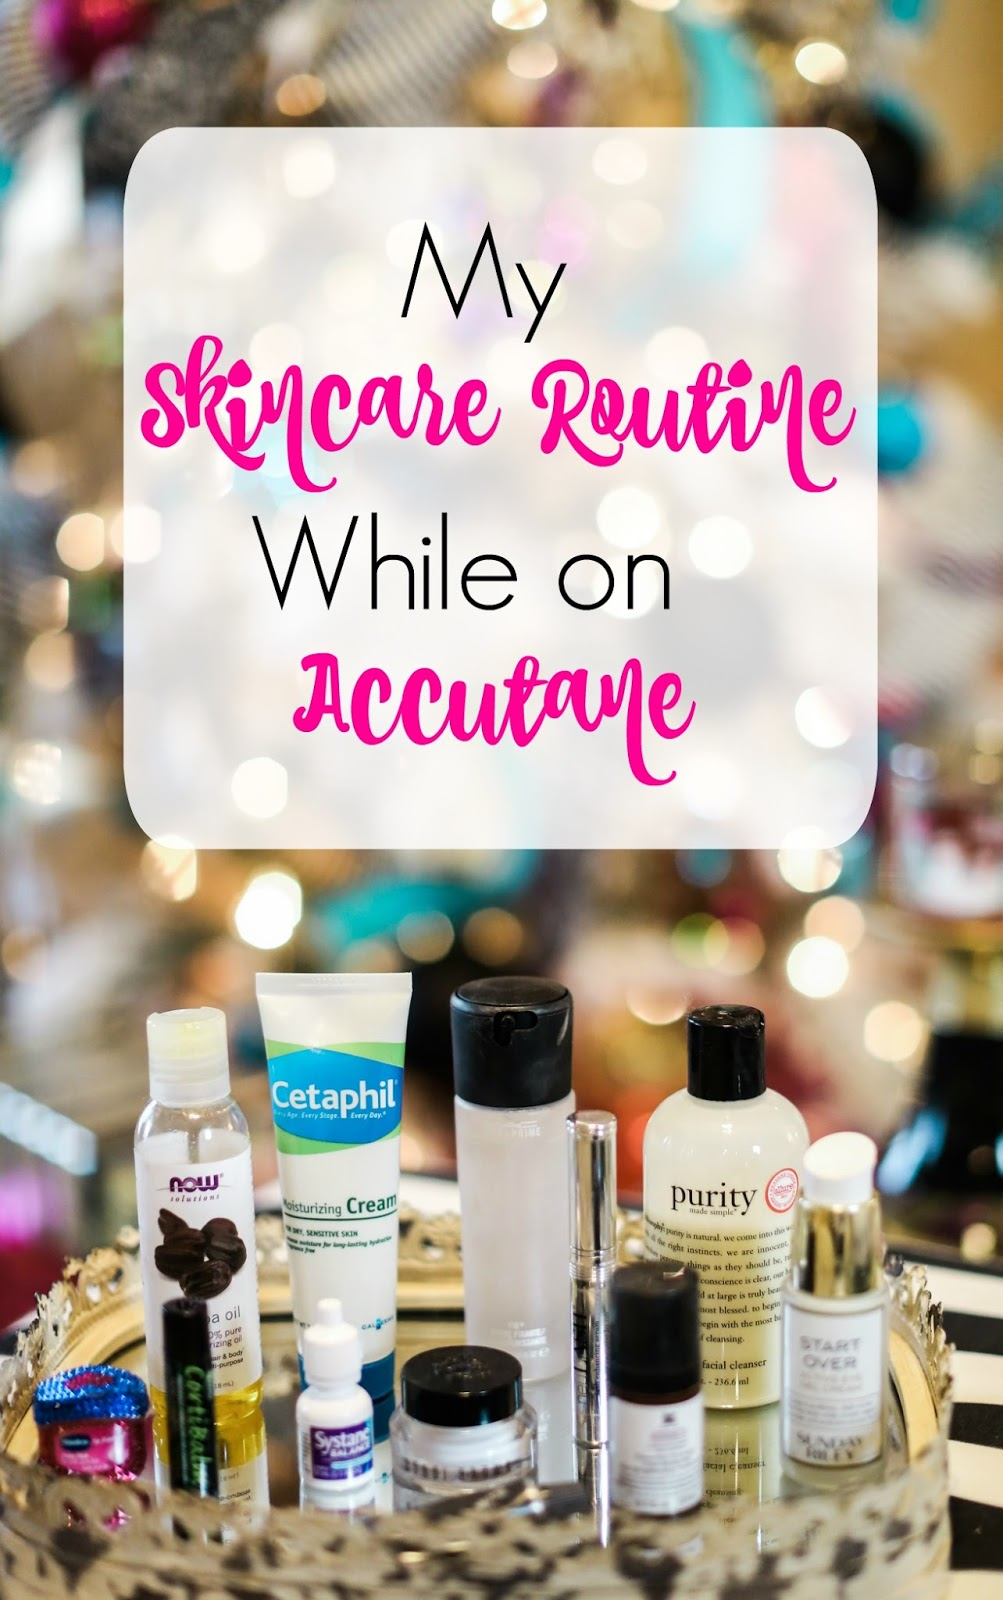 skincare for accutane, what lotion is best for accutane, how to survive accutane, accutane survival kit, accutane review month by month, accutane before and after, accutane chapstick, best accutane chapstick,